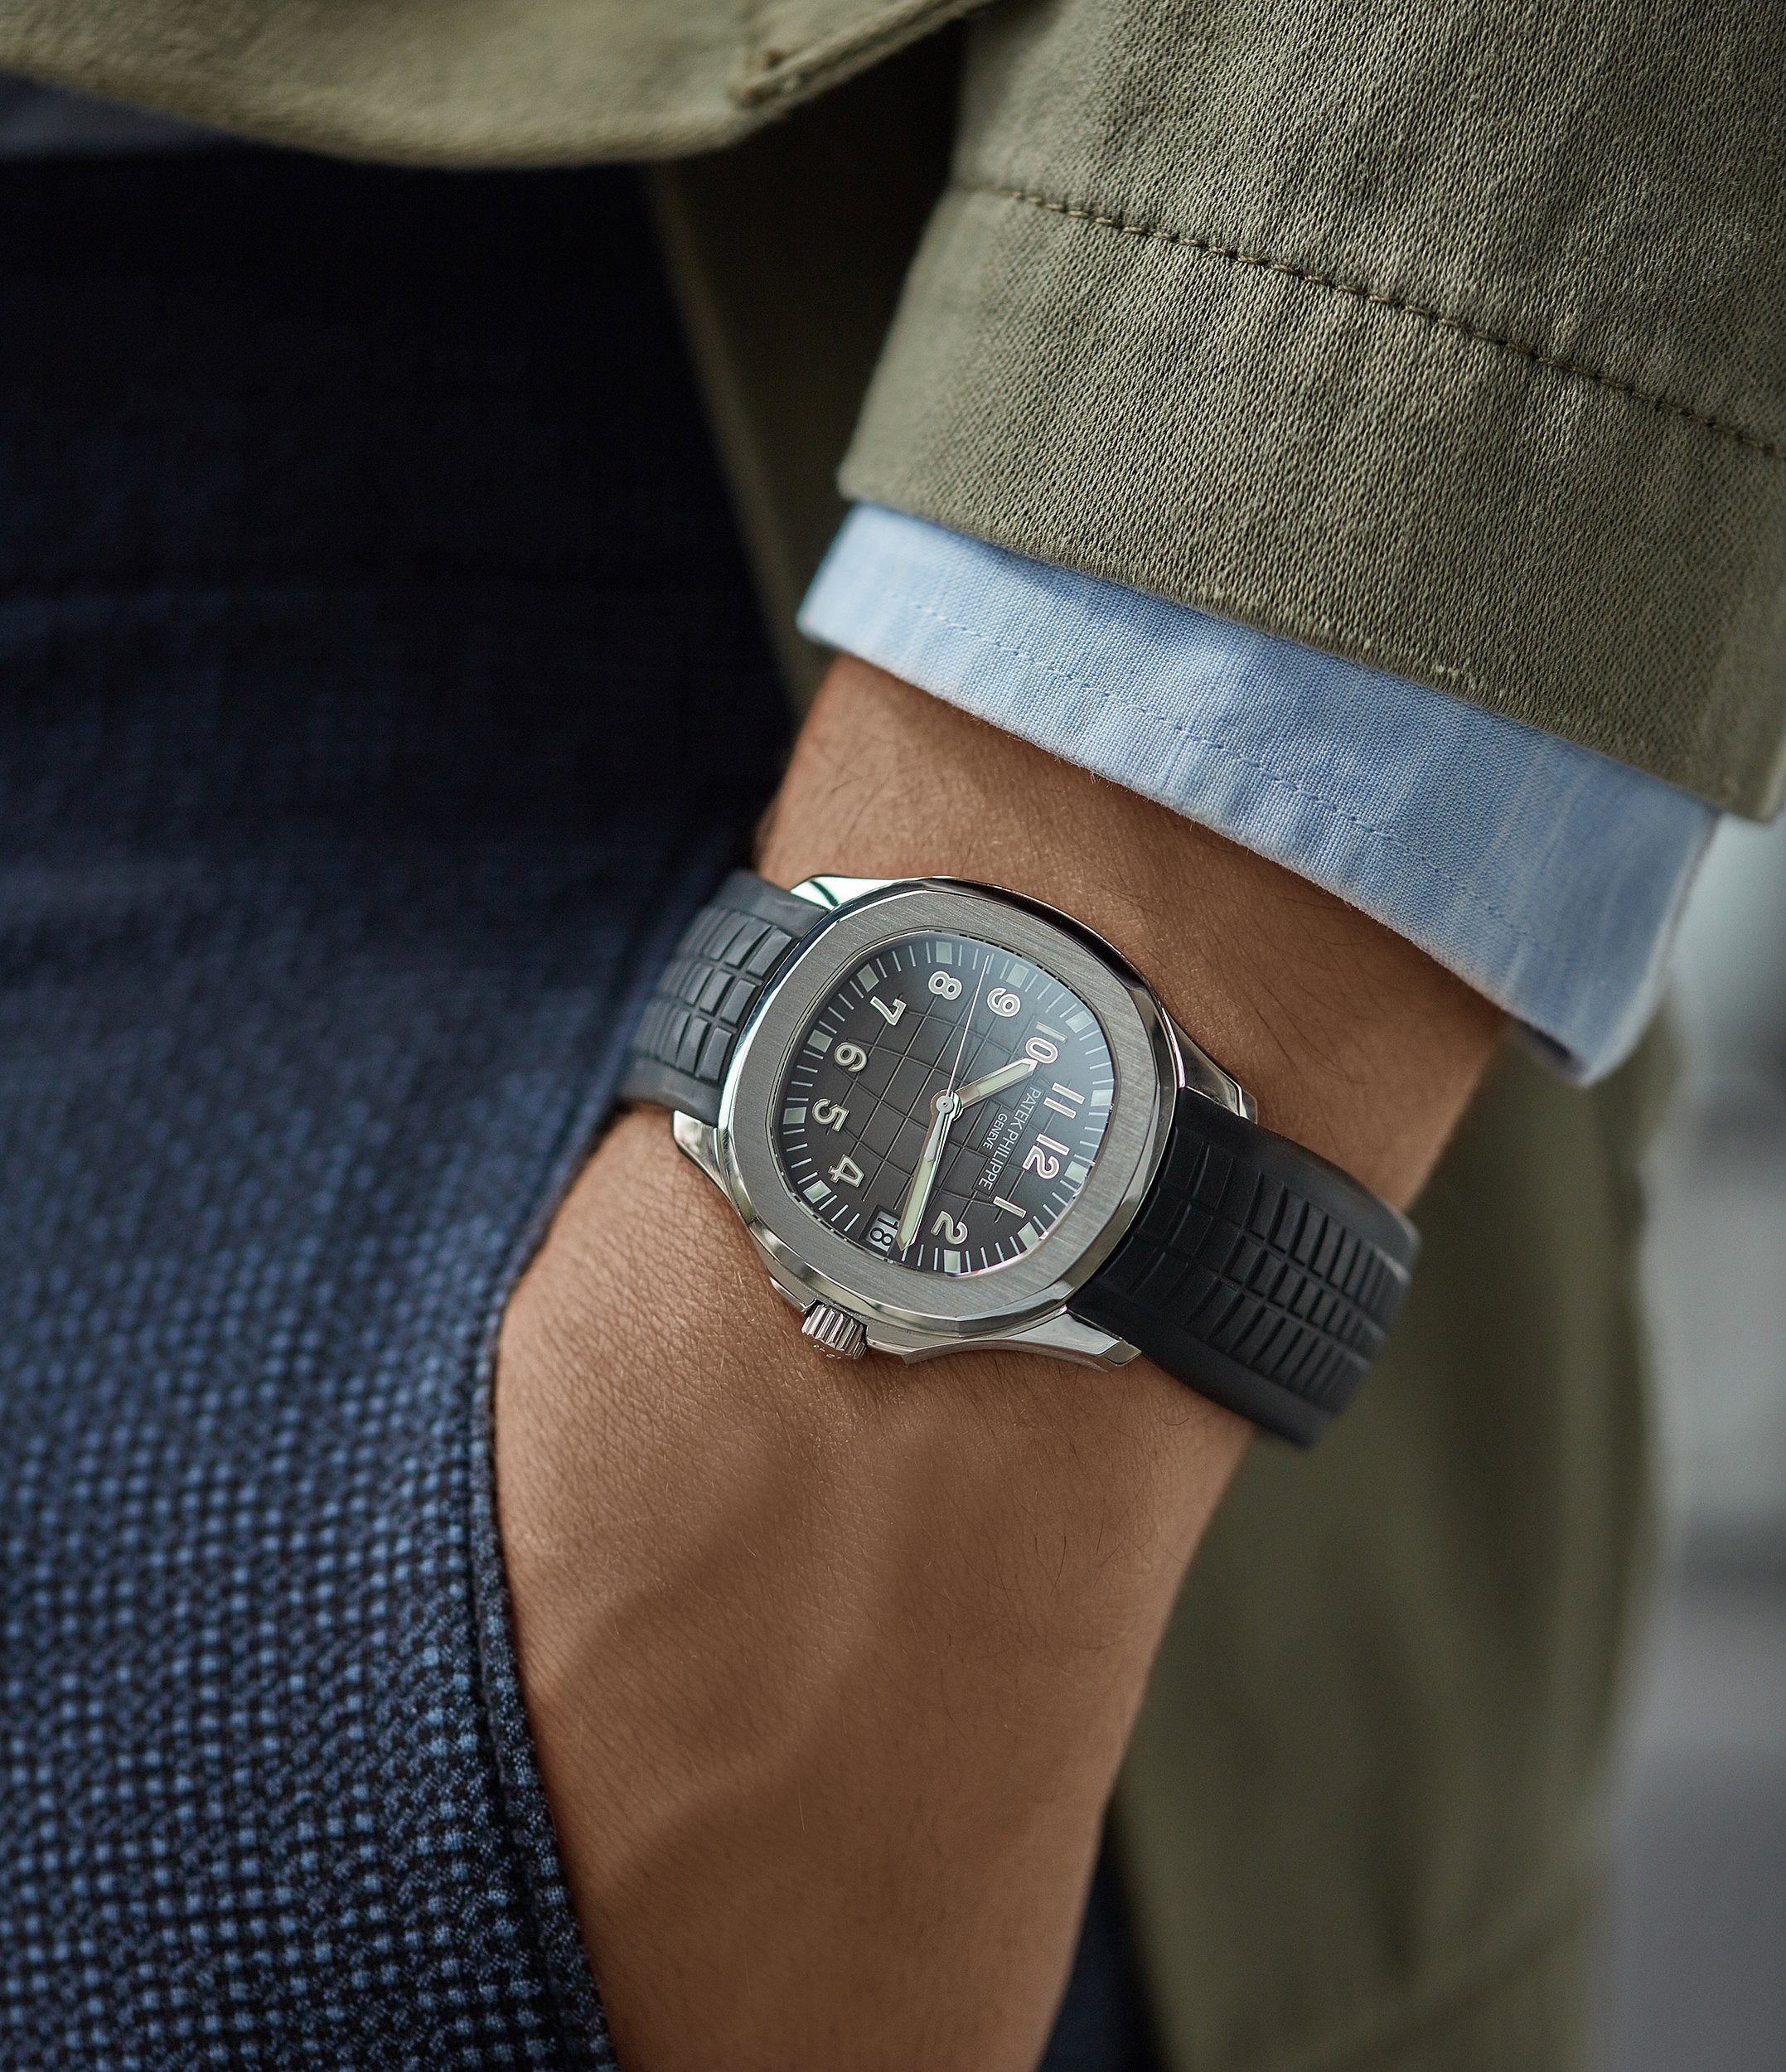 Patek Philippe 5165 Aquanaut on the wrist pocket shot for A Collected Man London